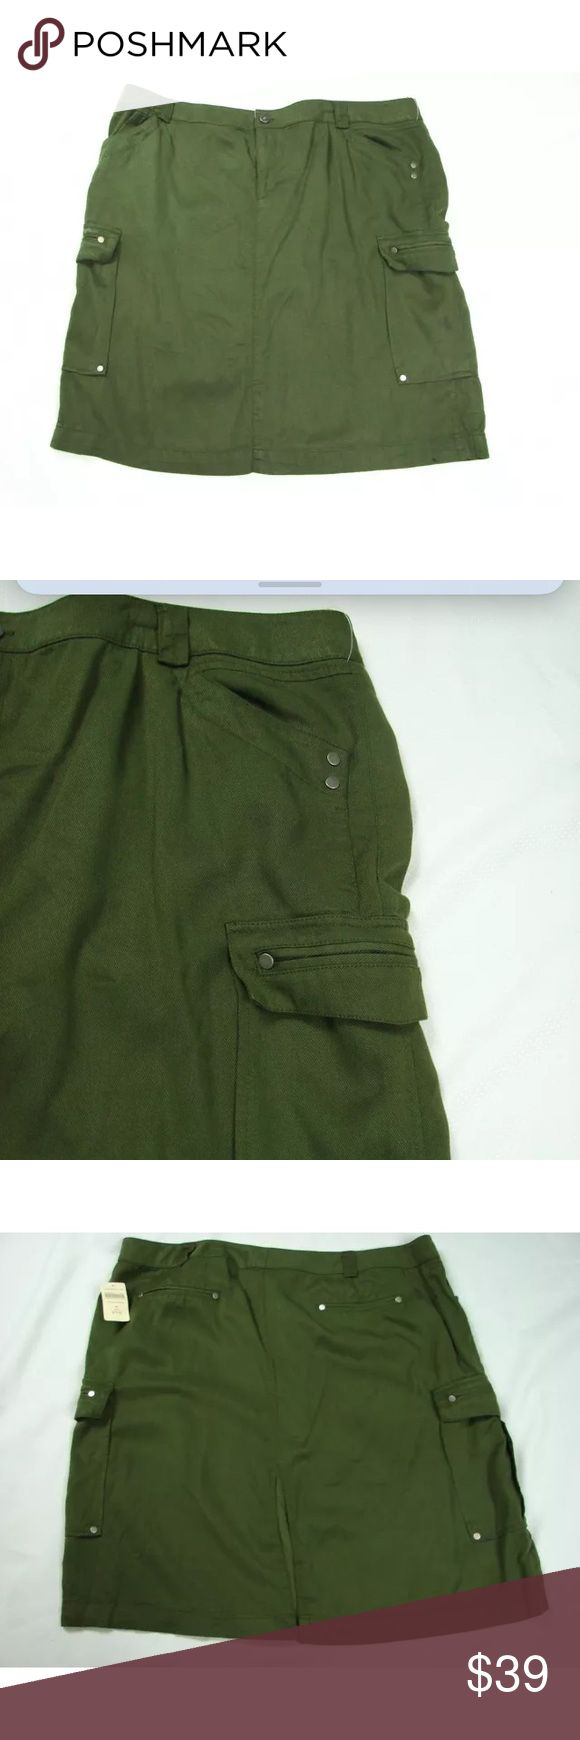 Coldwater Creek Pencil Skirt Cargo Pocket Army NEW Coldwater Creek Cargo Pocket Pencil Skirt    Army Green    Size 20   Retail $79.95  BIN6 Coldwater Creek Skirts Pencil